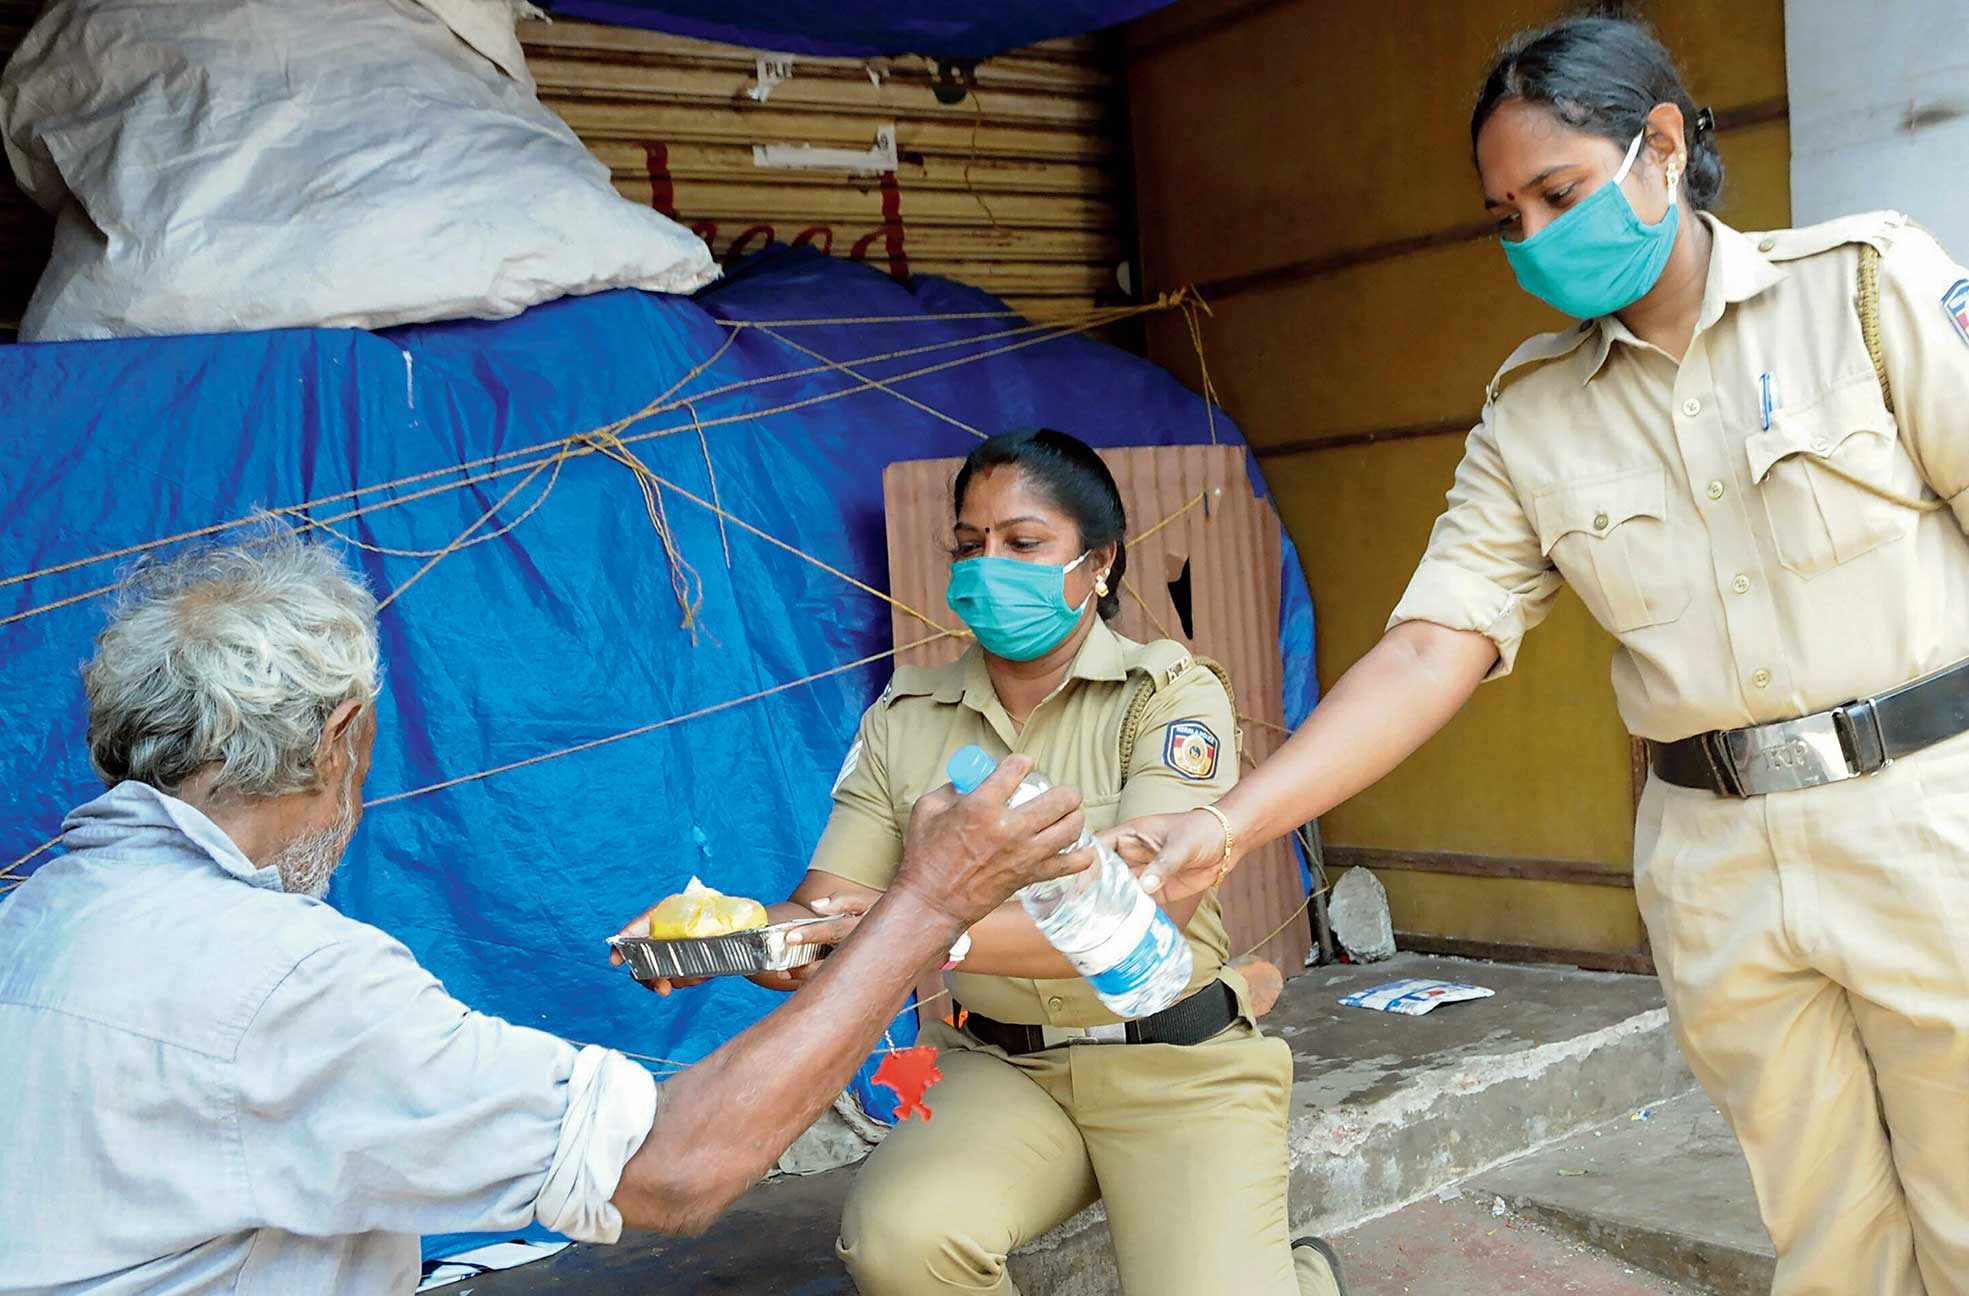 Police personnel hand over food during the lockdown in Kozhikode, Kerala, on Sunday.